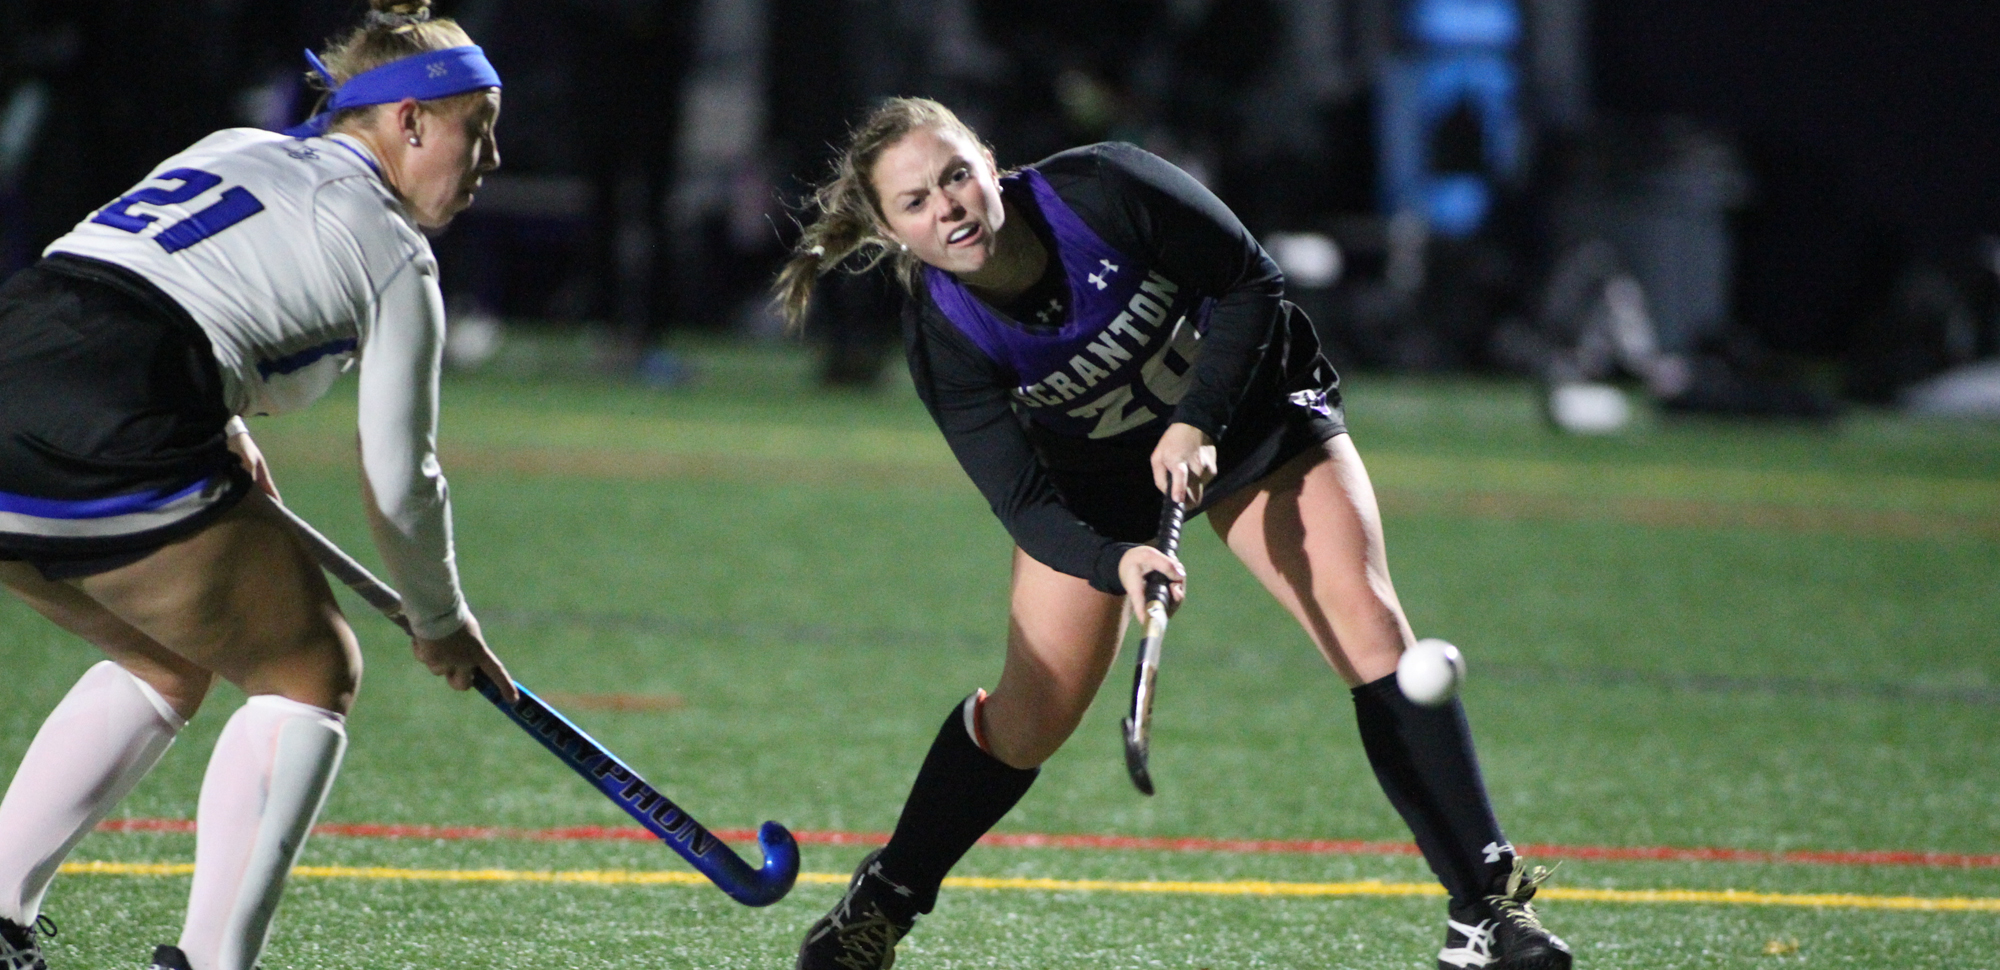 Senior Gracie McClatchy tallied a goal and an assist as The University of Scranton field hockey team advanced to the Landmark Conference Championship Game with a 3-0 win over Elizabethtown on Wednesday. © Photo by Timothy R. Dougherty / doubleeaglephotography.com